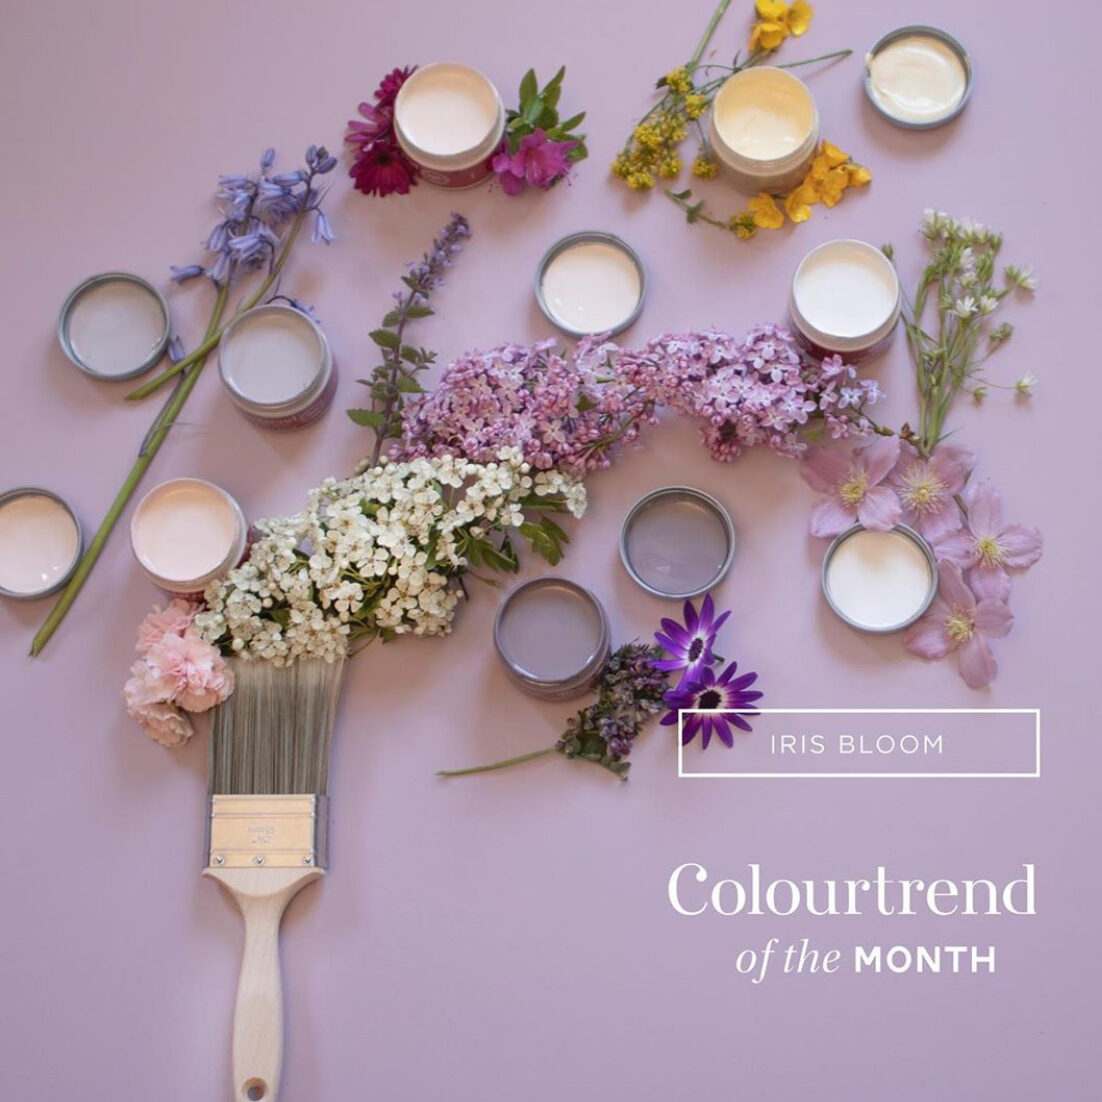 Colourtrend May 2020 Color